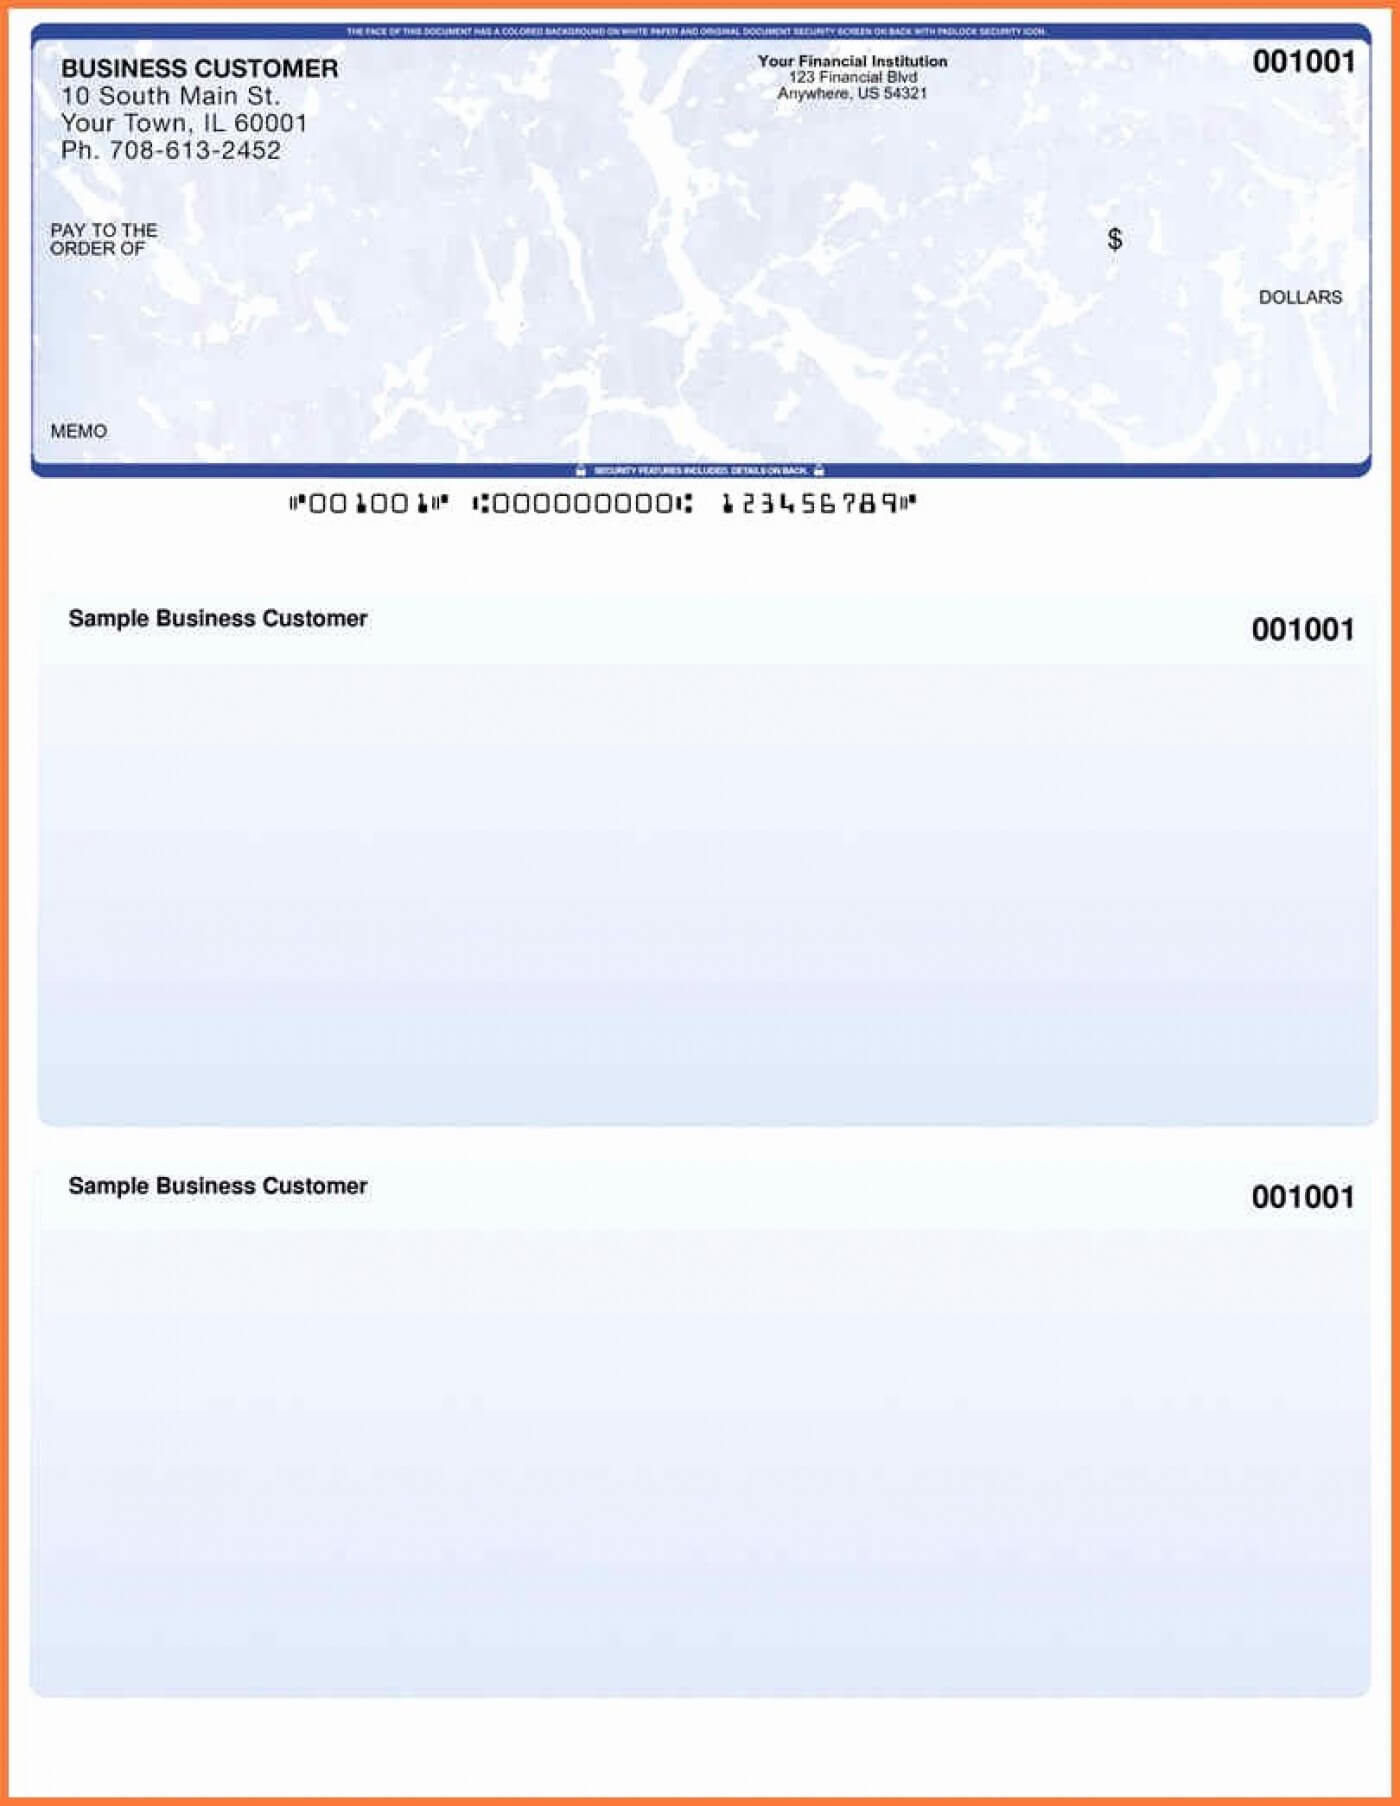 002 Microsoft Word Business Check Template Blank Ideas For Blank Business Check Template